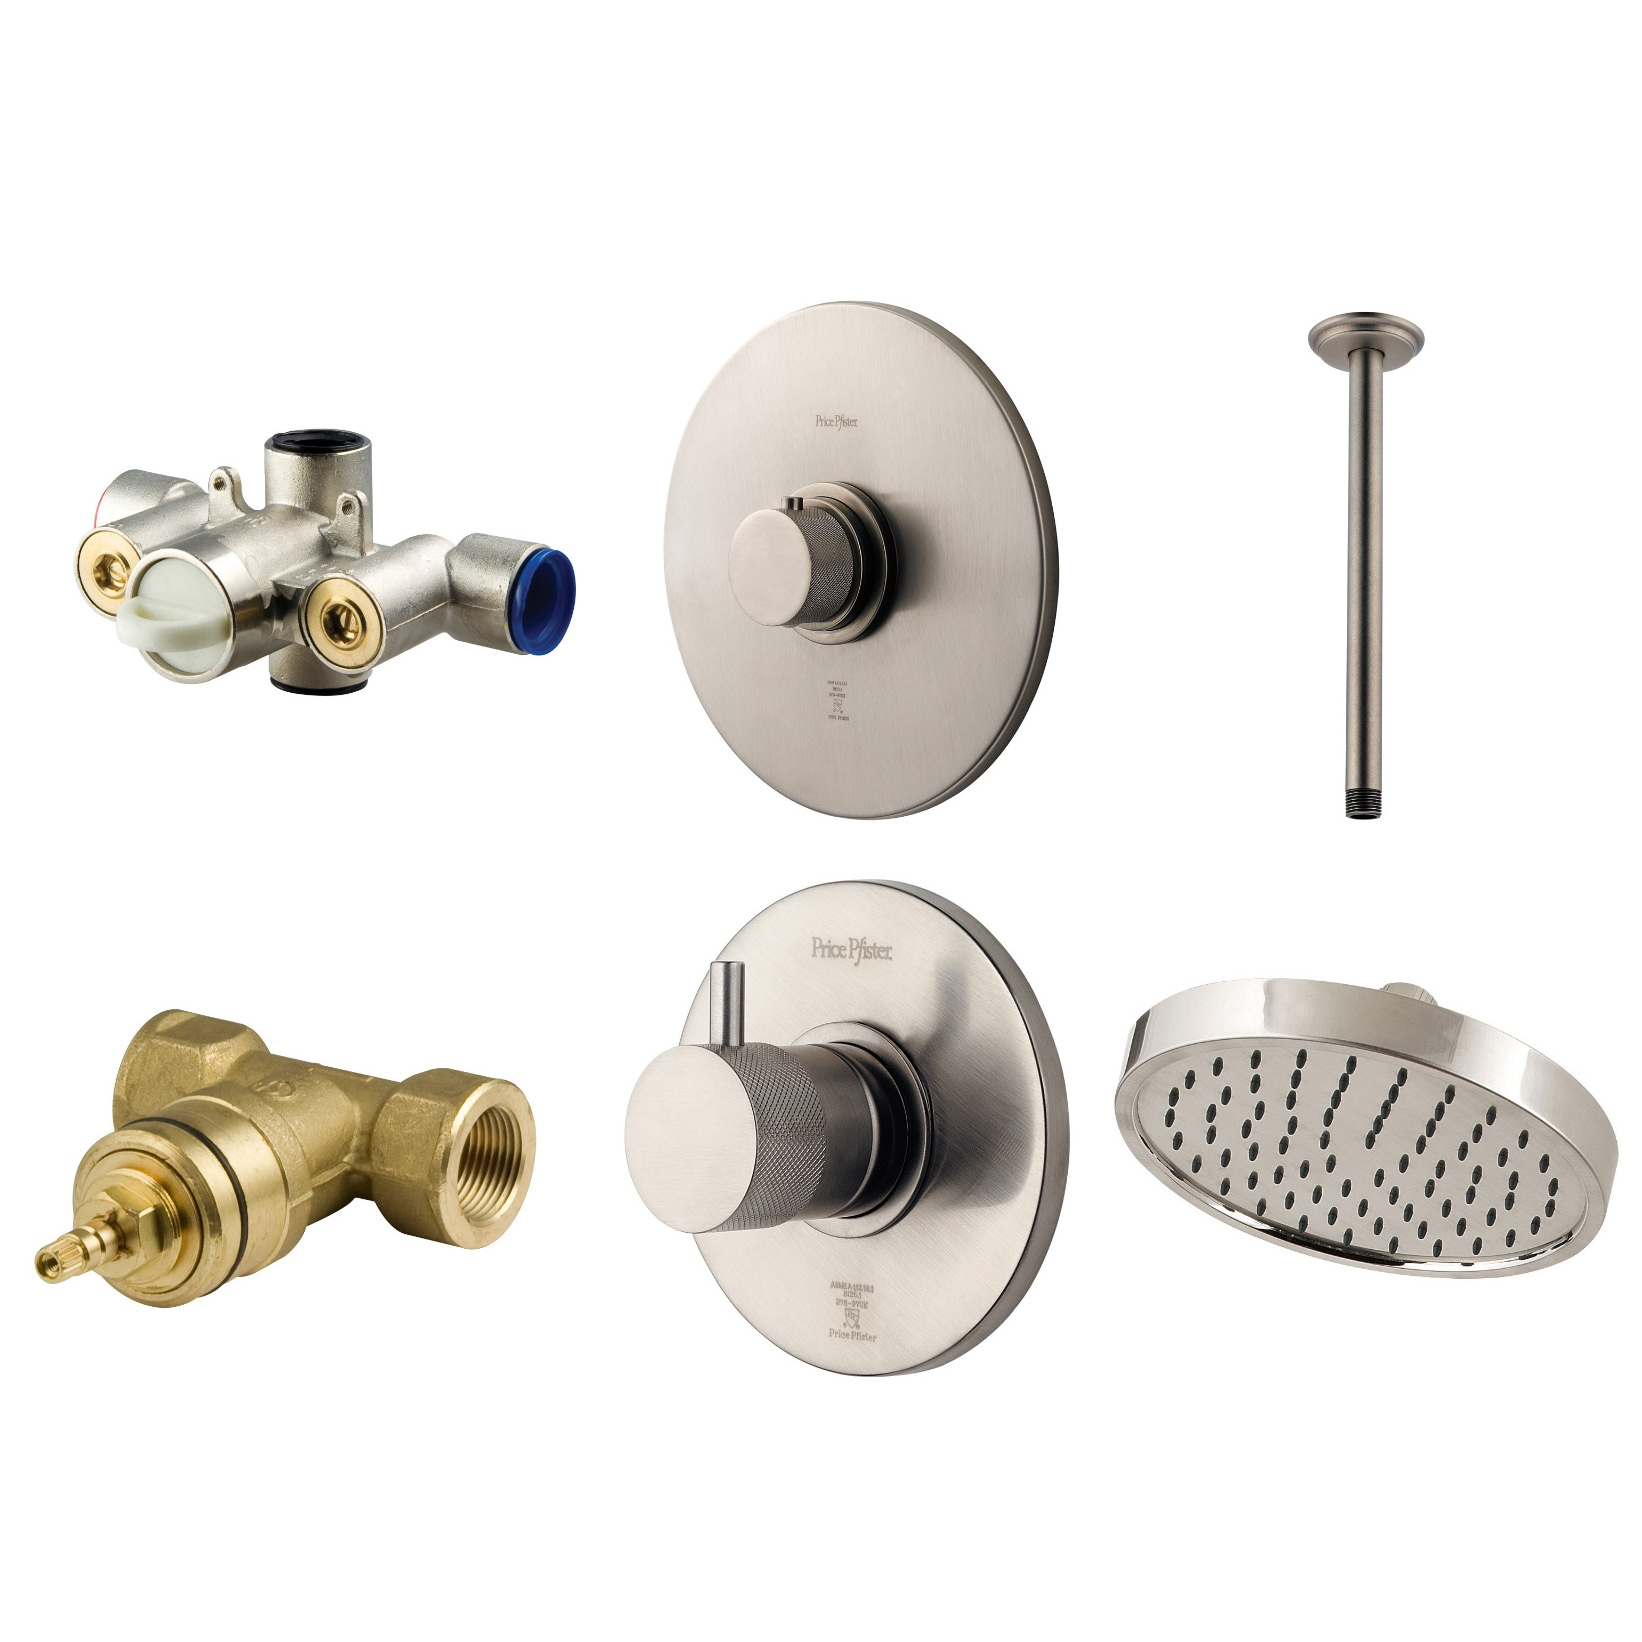 Pfister™ Price Pfister Thermostatic Ceiling-mount Shower Head Combo at Sears.com